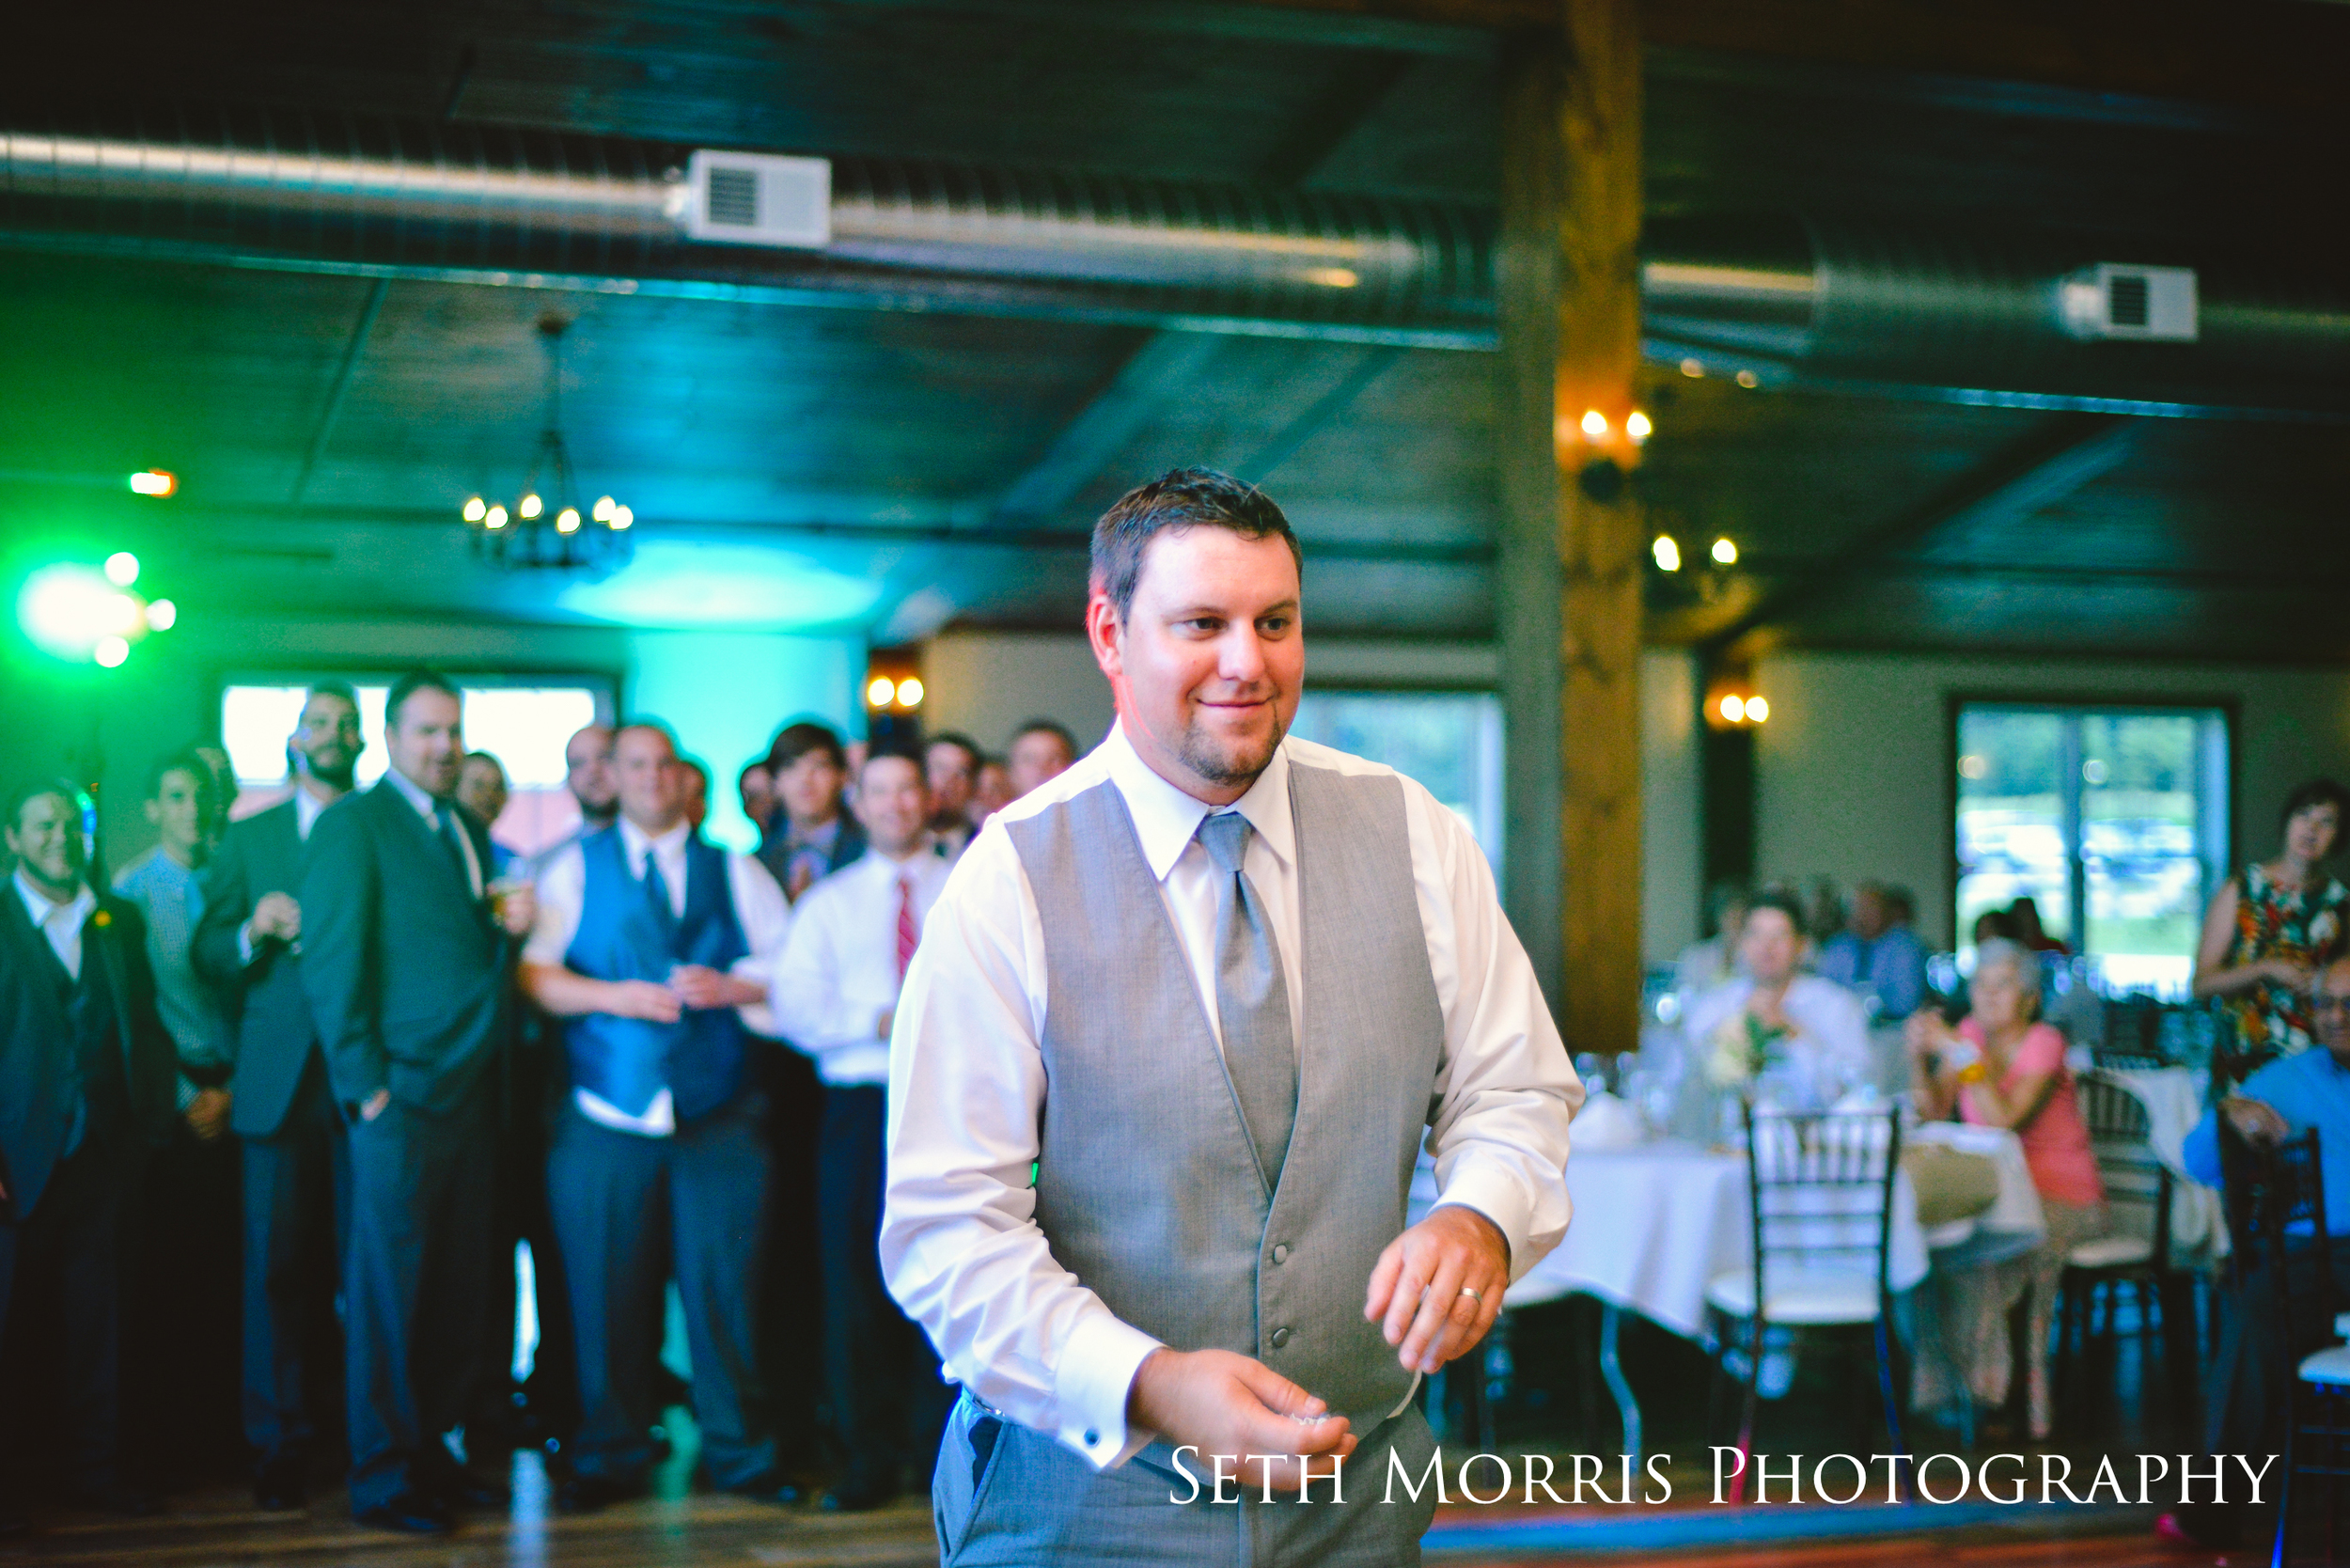 hornbaker-barn-wedding-photo-princeton-photographer-88.jpg